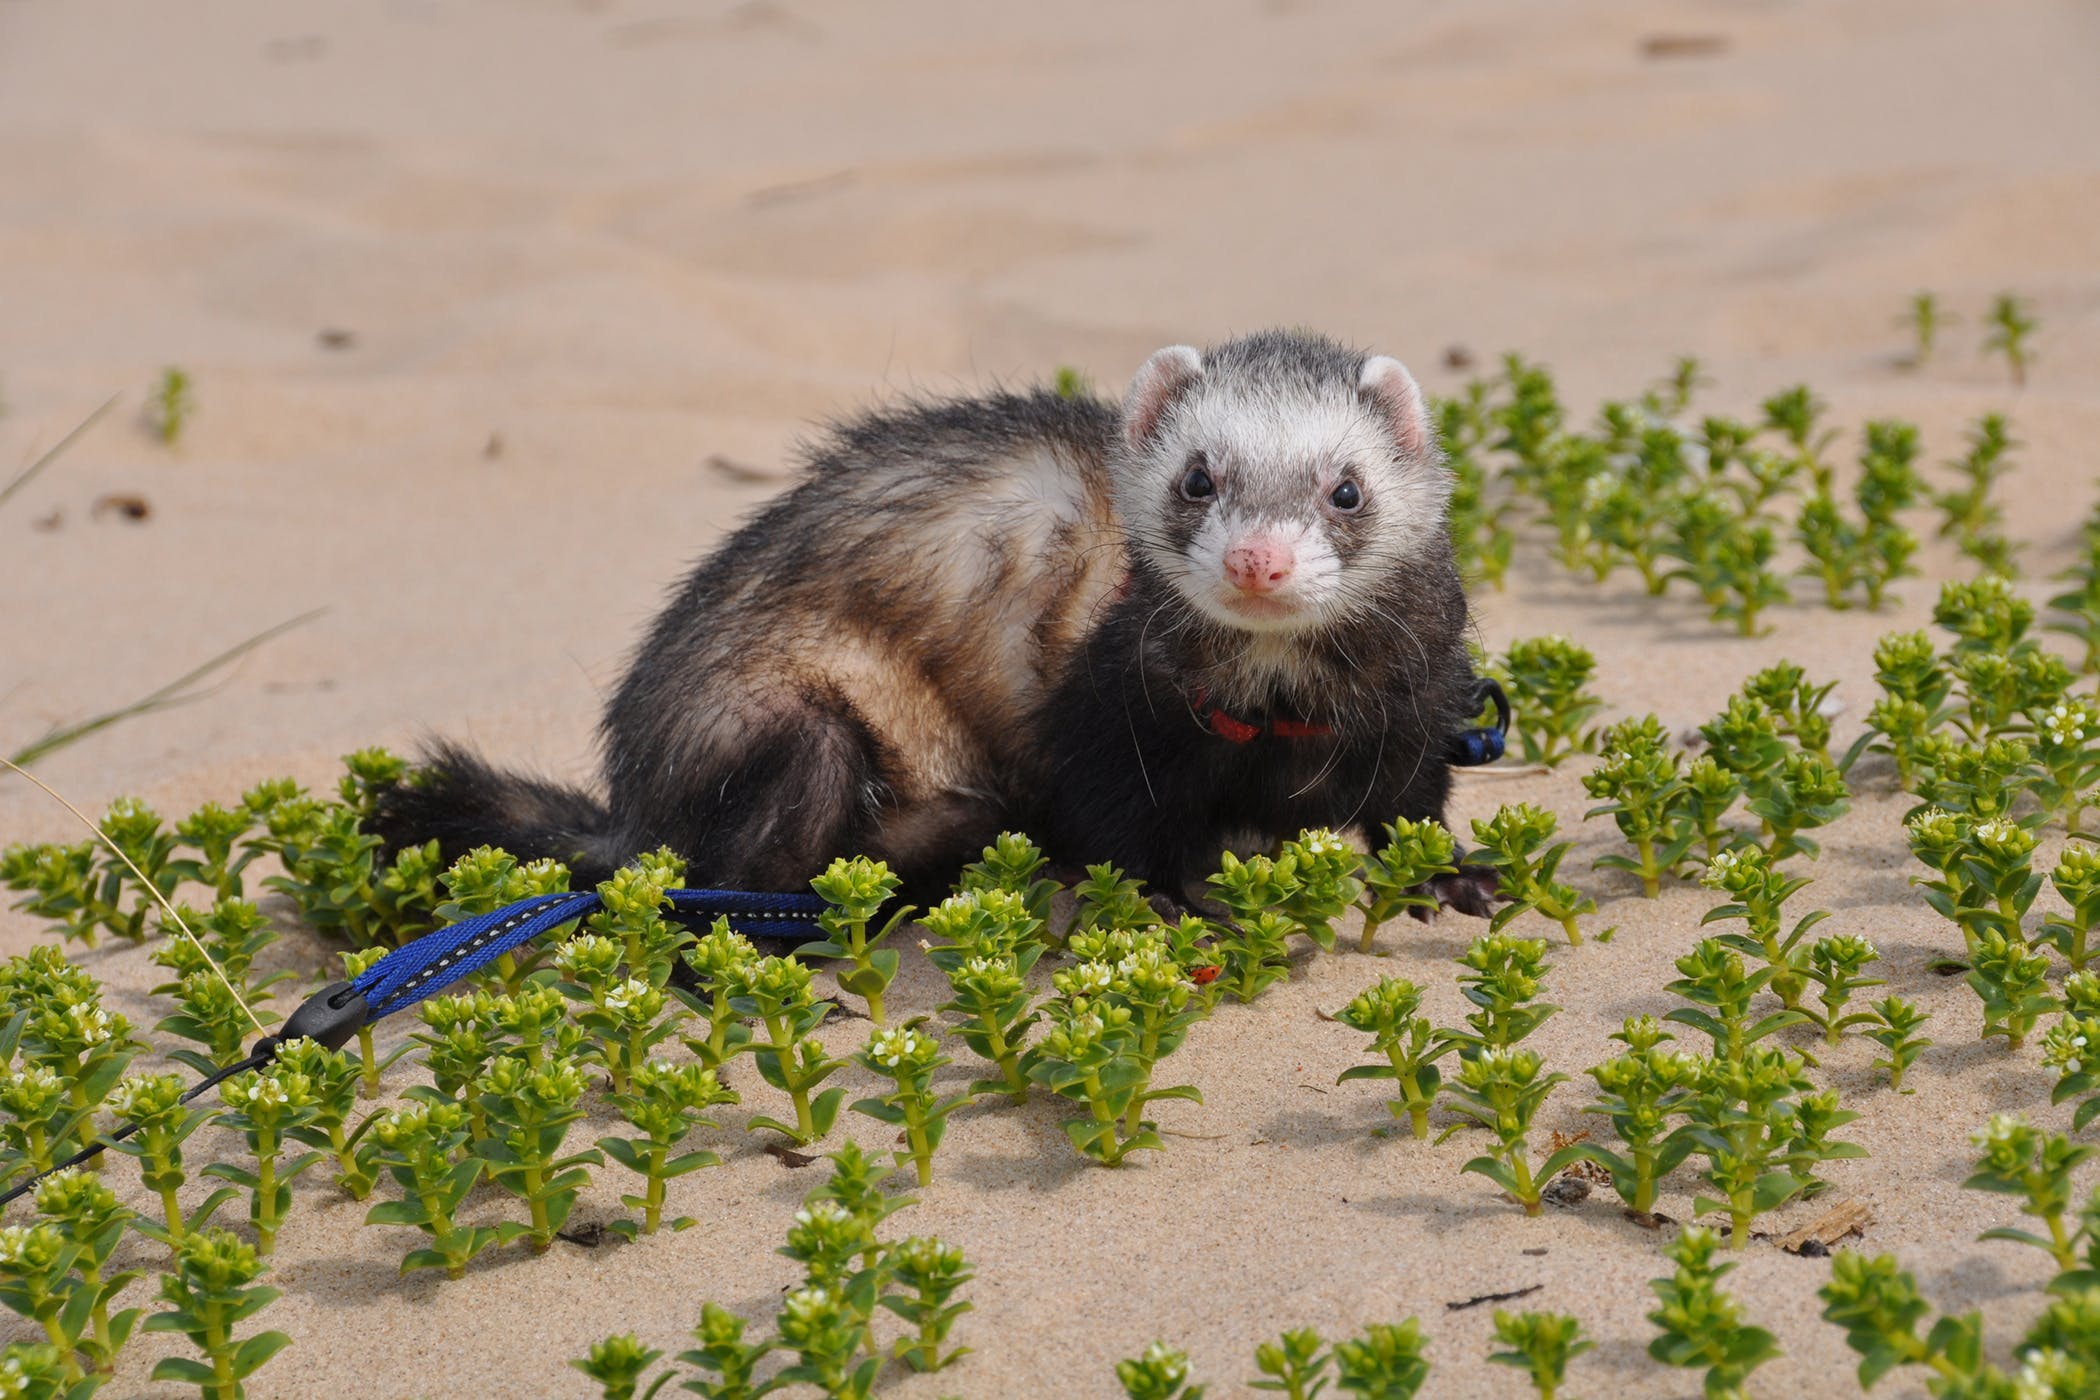 Watch How to Spread the Ferret Fascination on wikiHow video